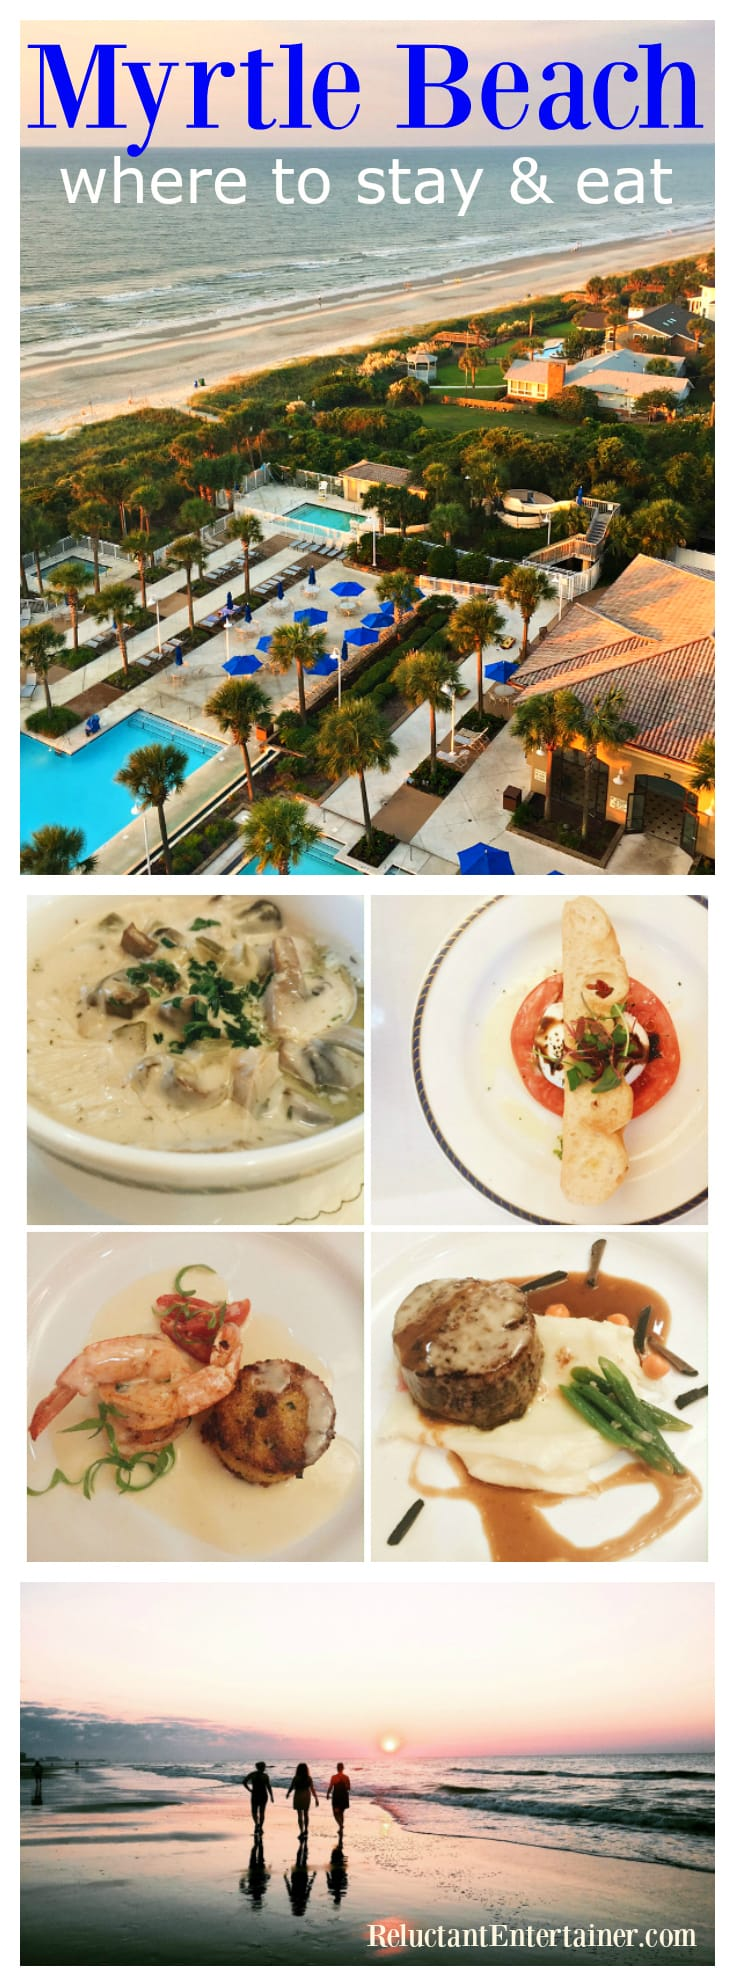 Myrtle Beach: Where to Stay and Eat